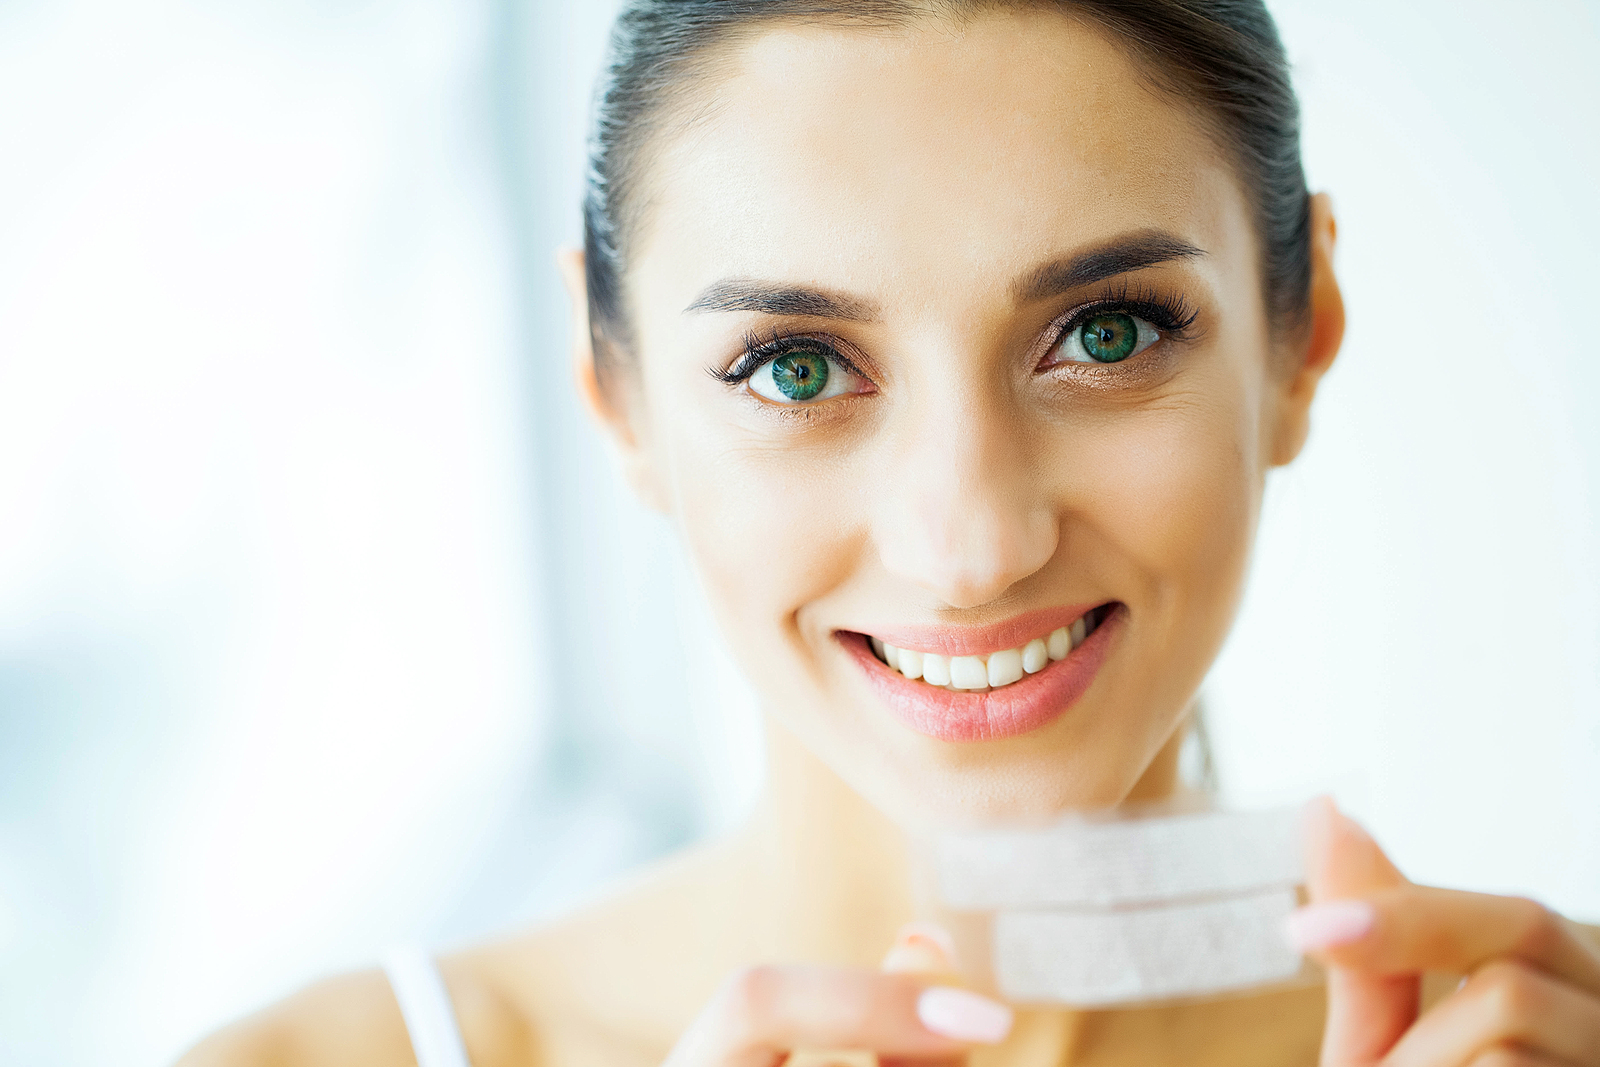 Get whiter teeth with professional teeth whitening